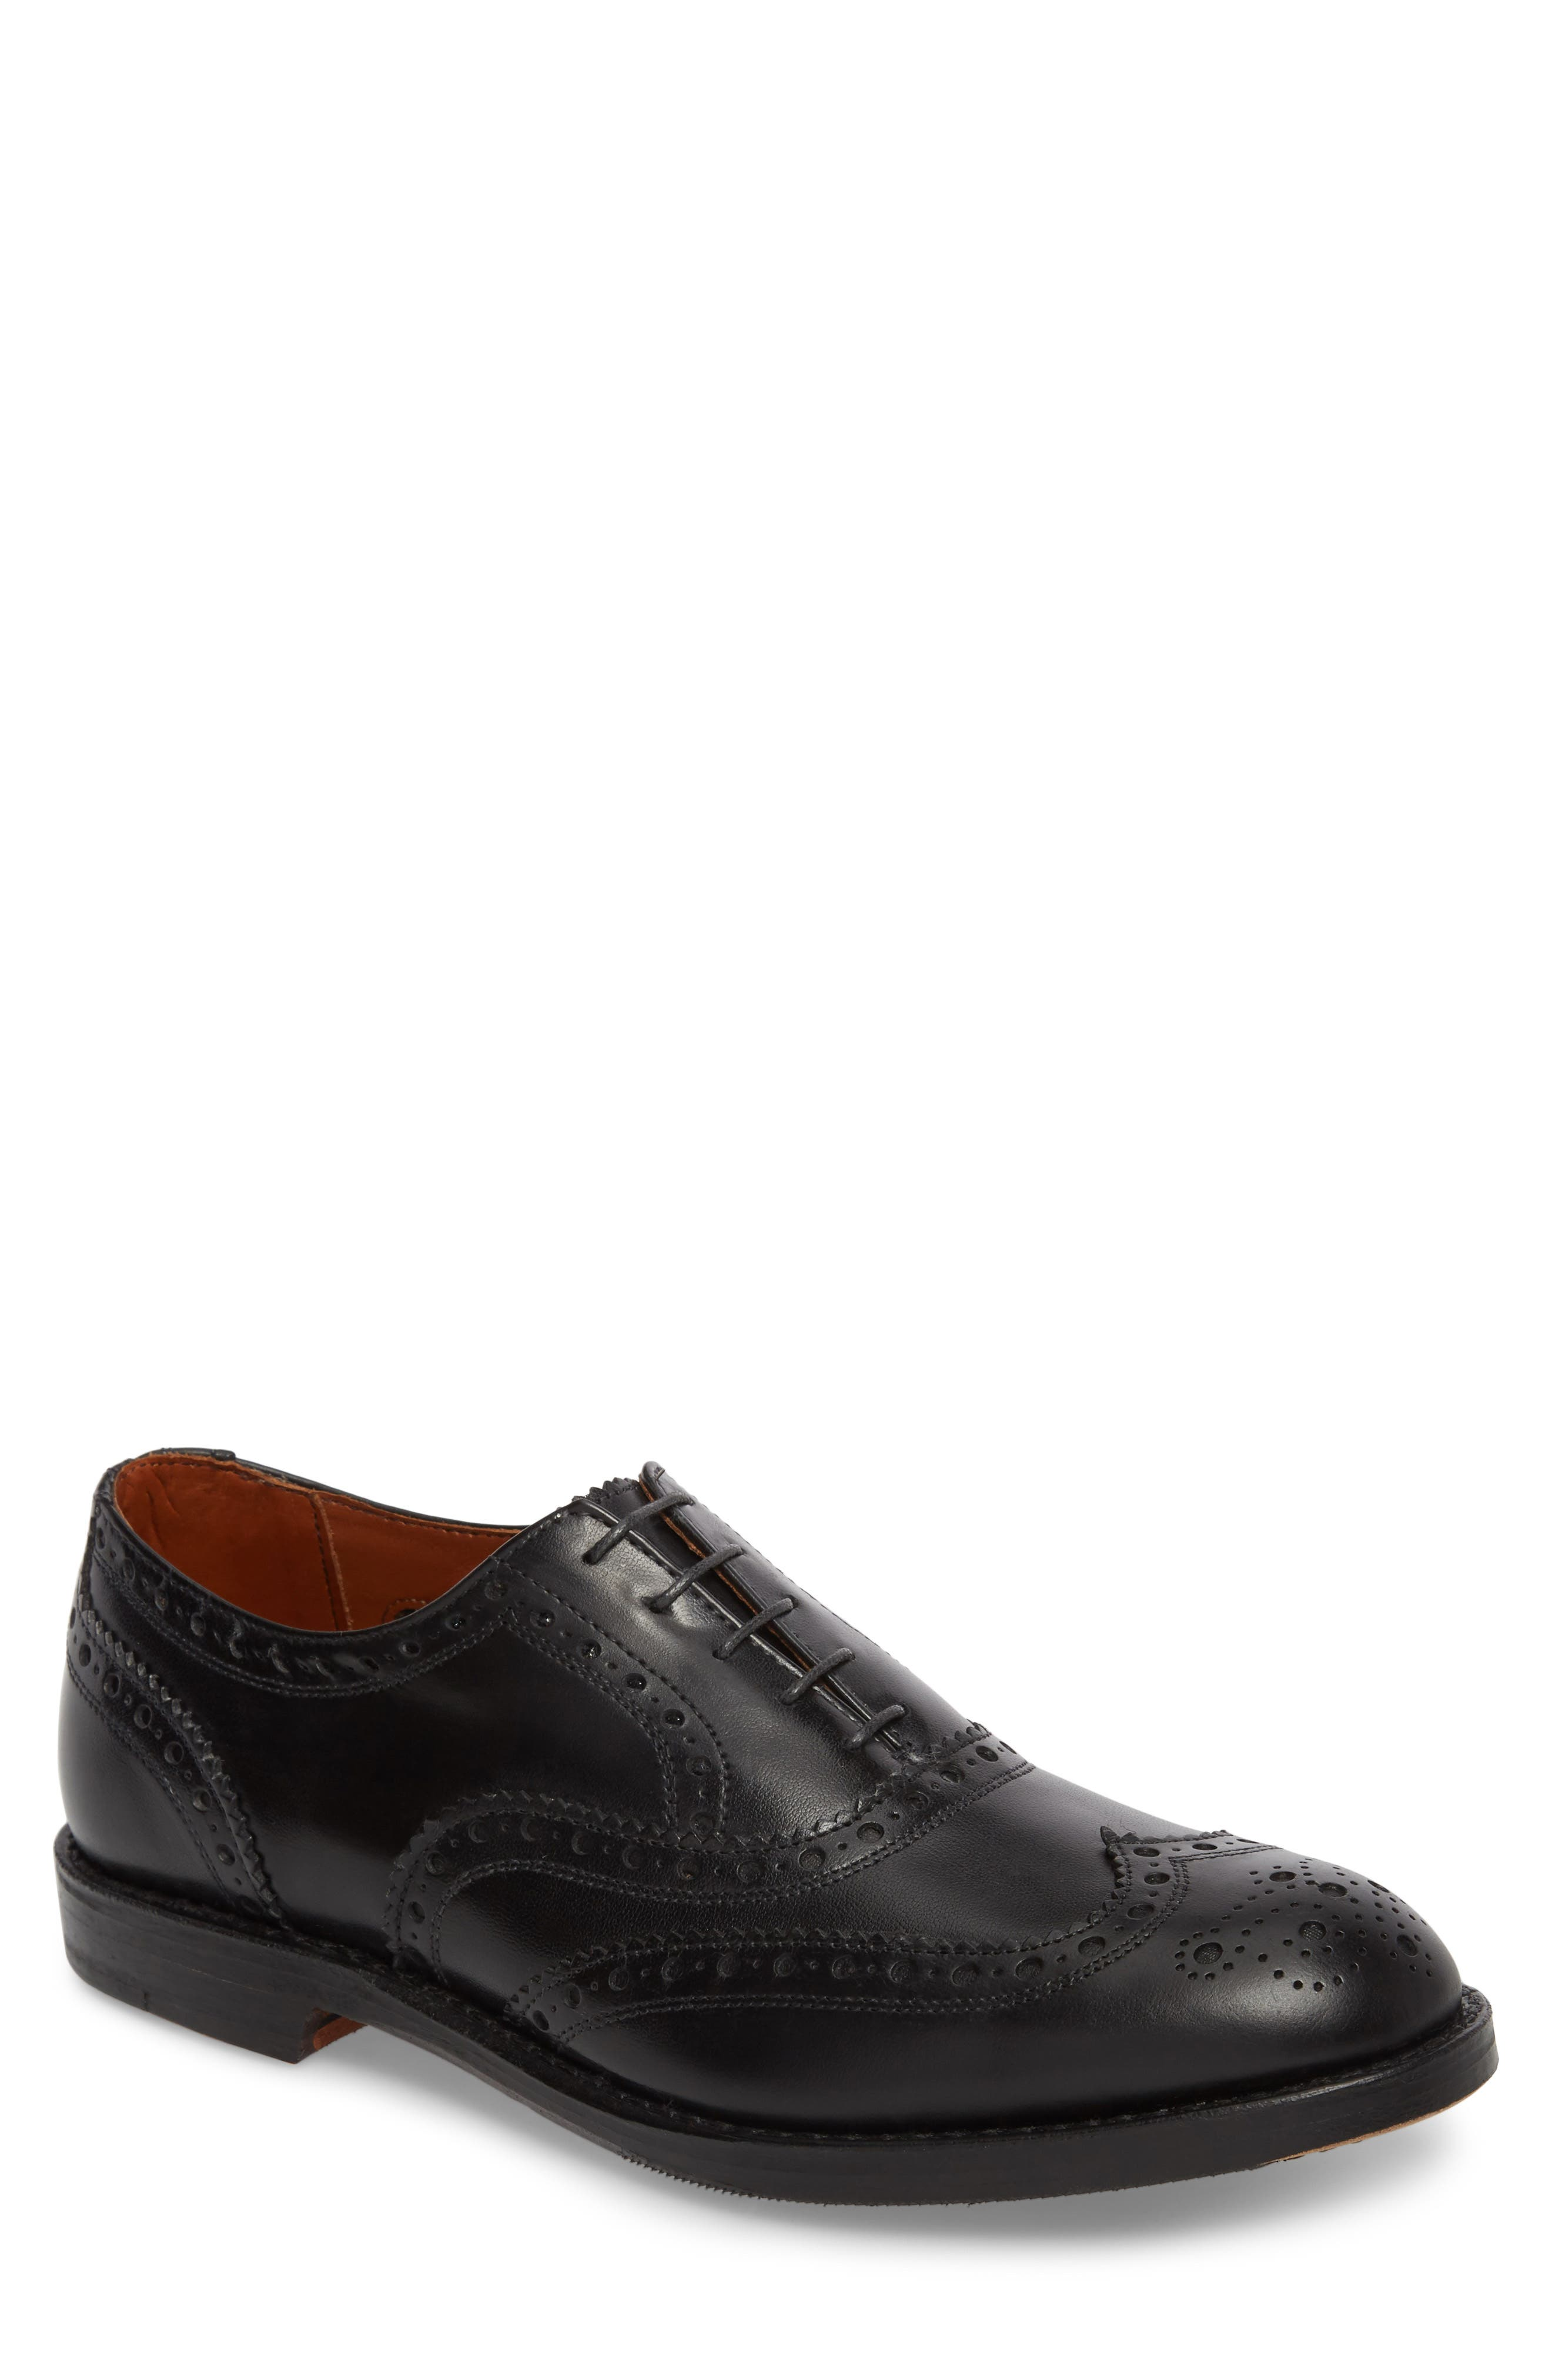 Whitney Wingtip Men),                         Main,                         color,